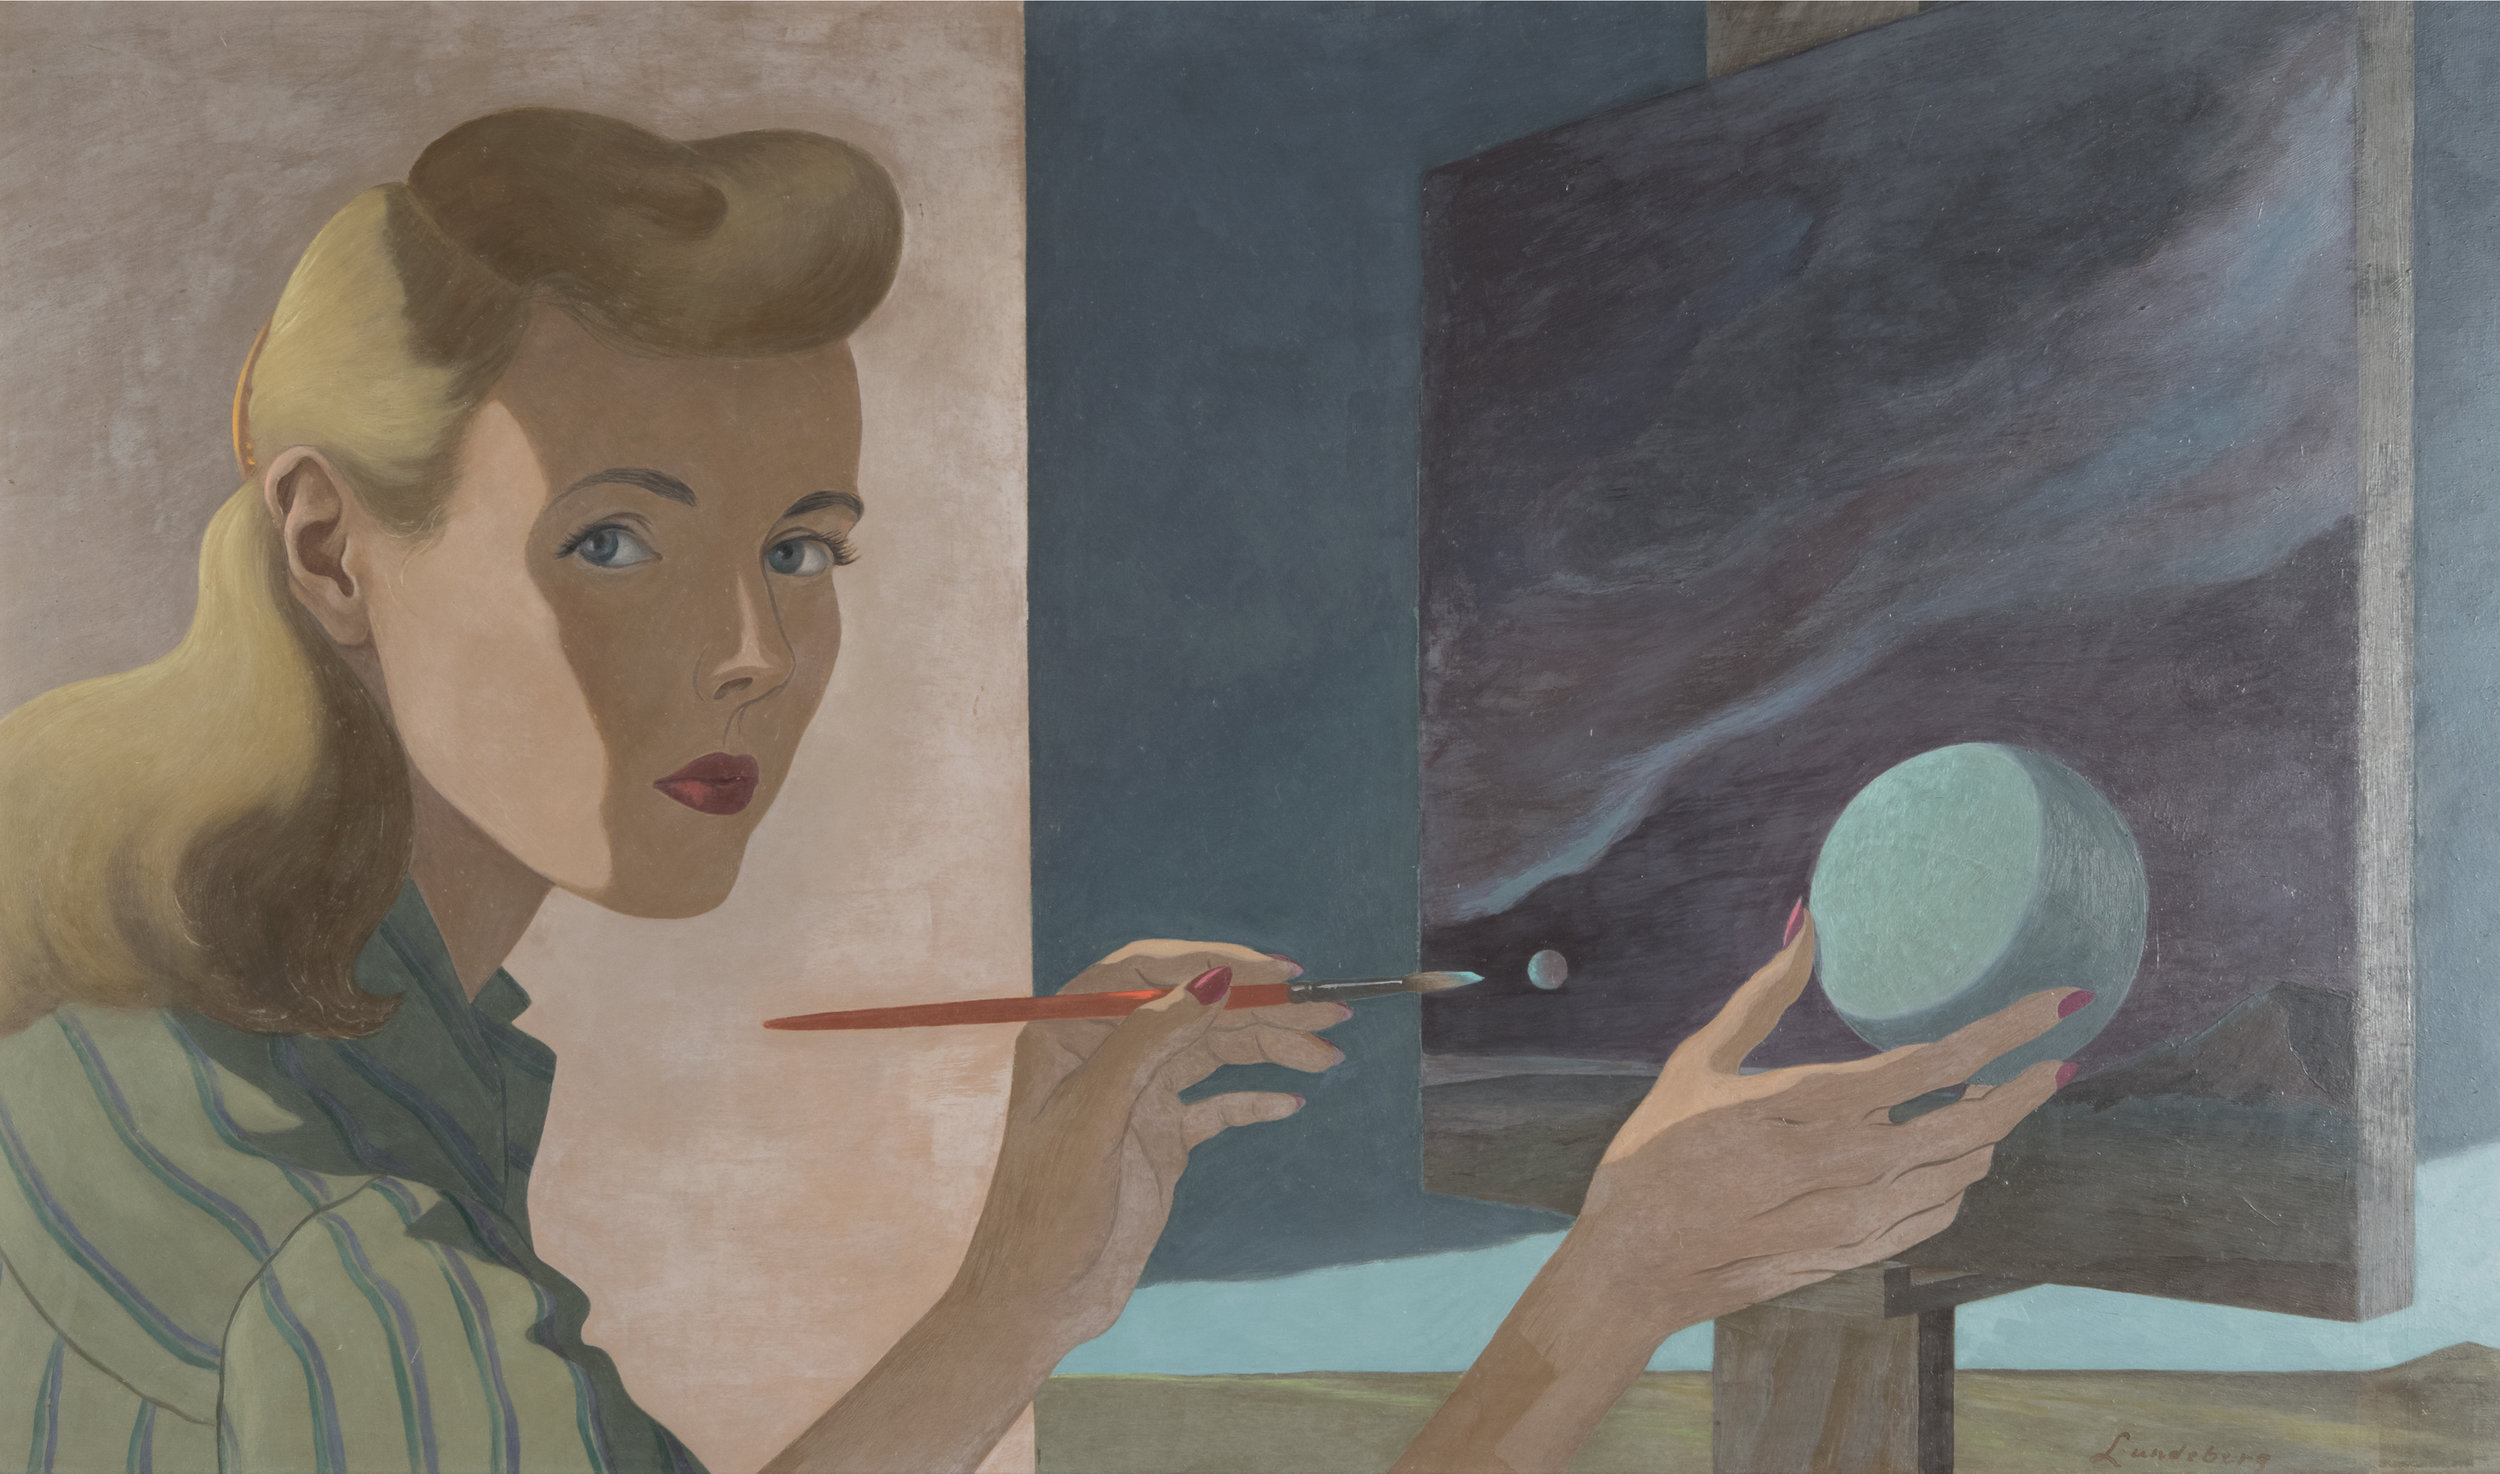 Helen Lundeberg  Self Portrait,  1944 Zimmerli Art Museum at Rutgers University Gift of The Lorser Feitelson and Helen Lundeberg Feitelson Arts Foundation © The Feitelson / Lundeberg Art Foundation Photo: Peter Jacobs